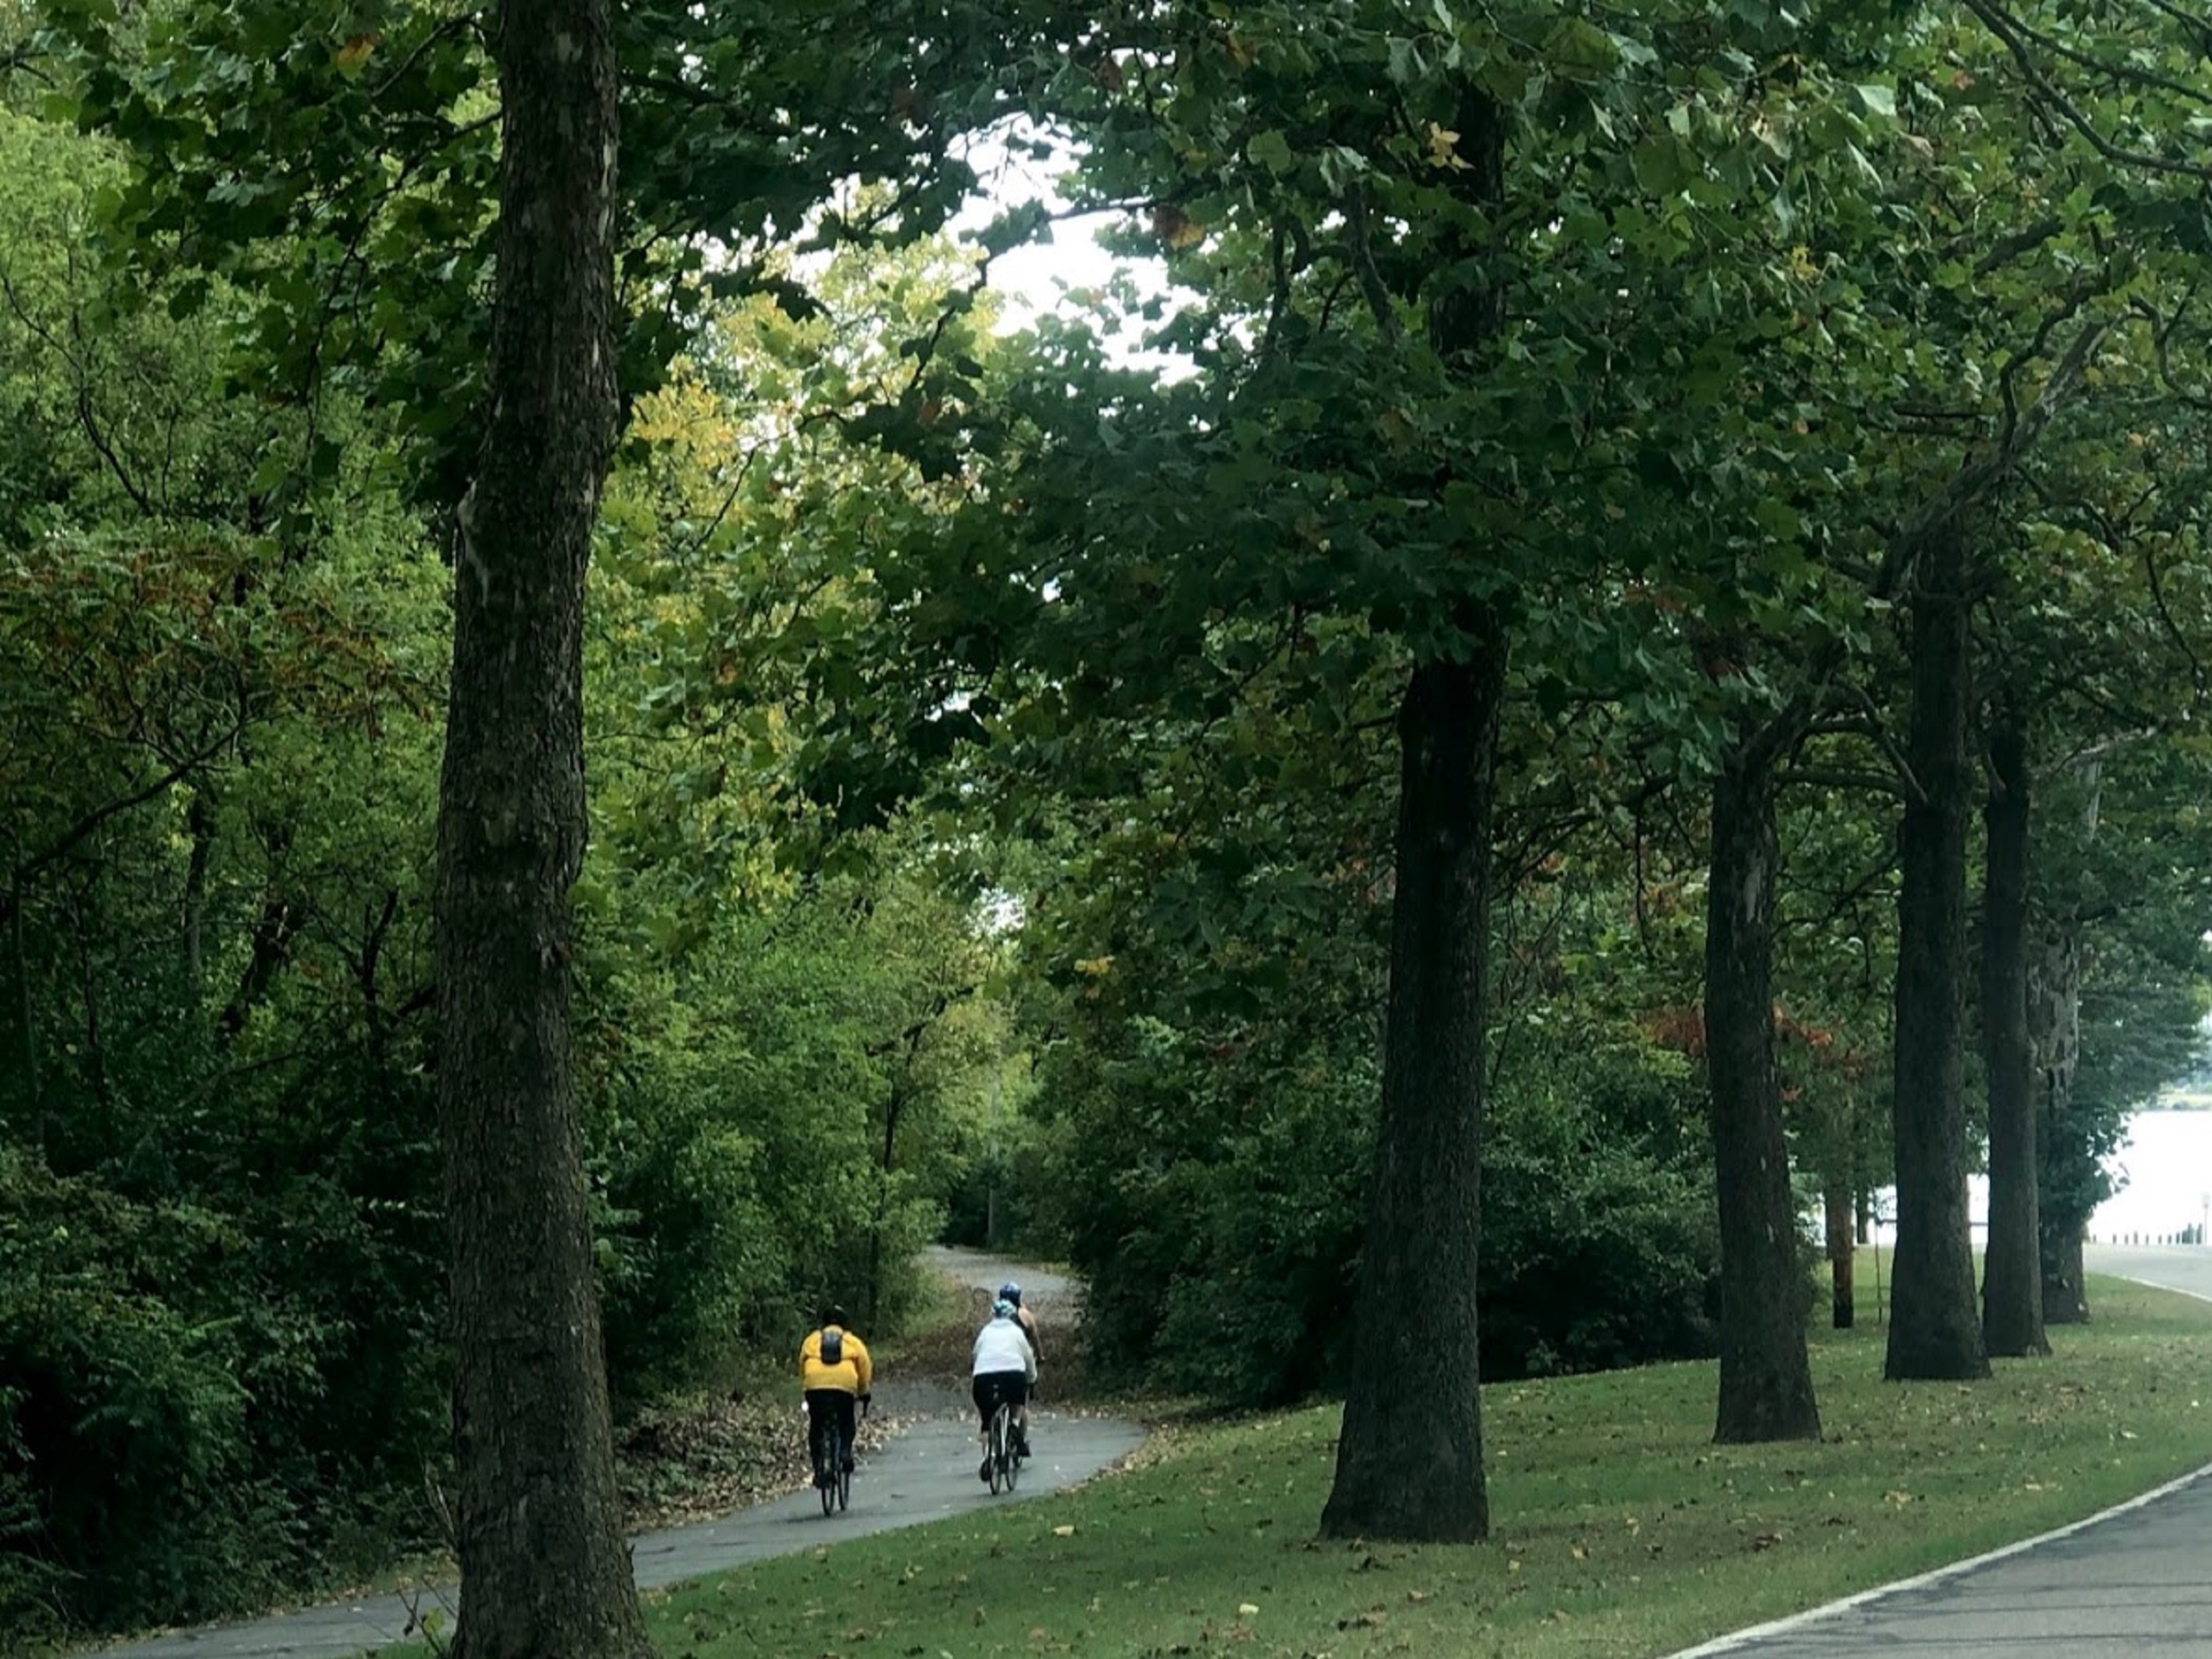 bike path with riders wearing white and yellow jerseys in a forest with green trees